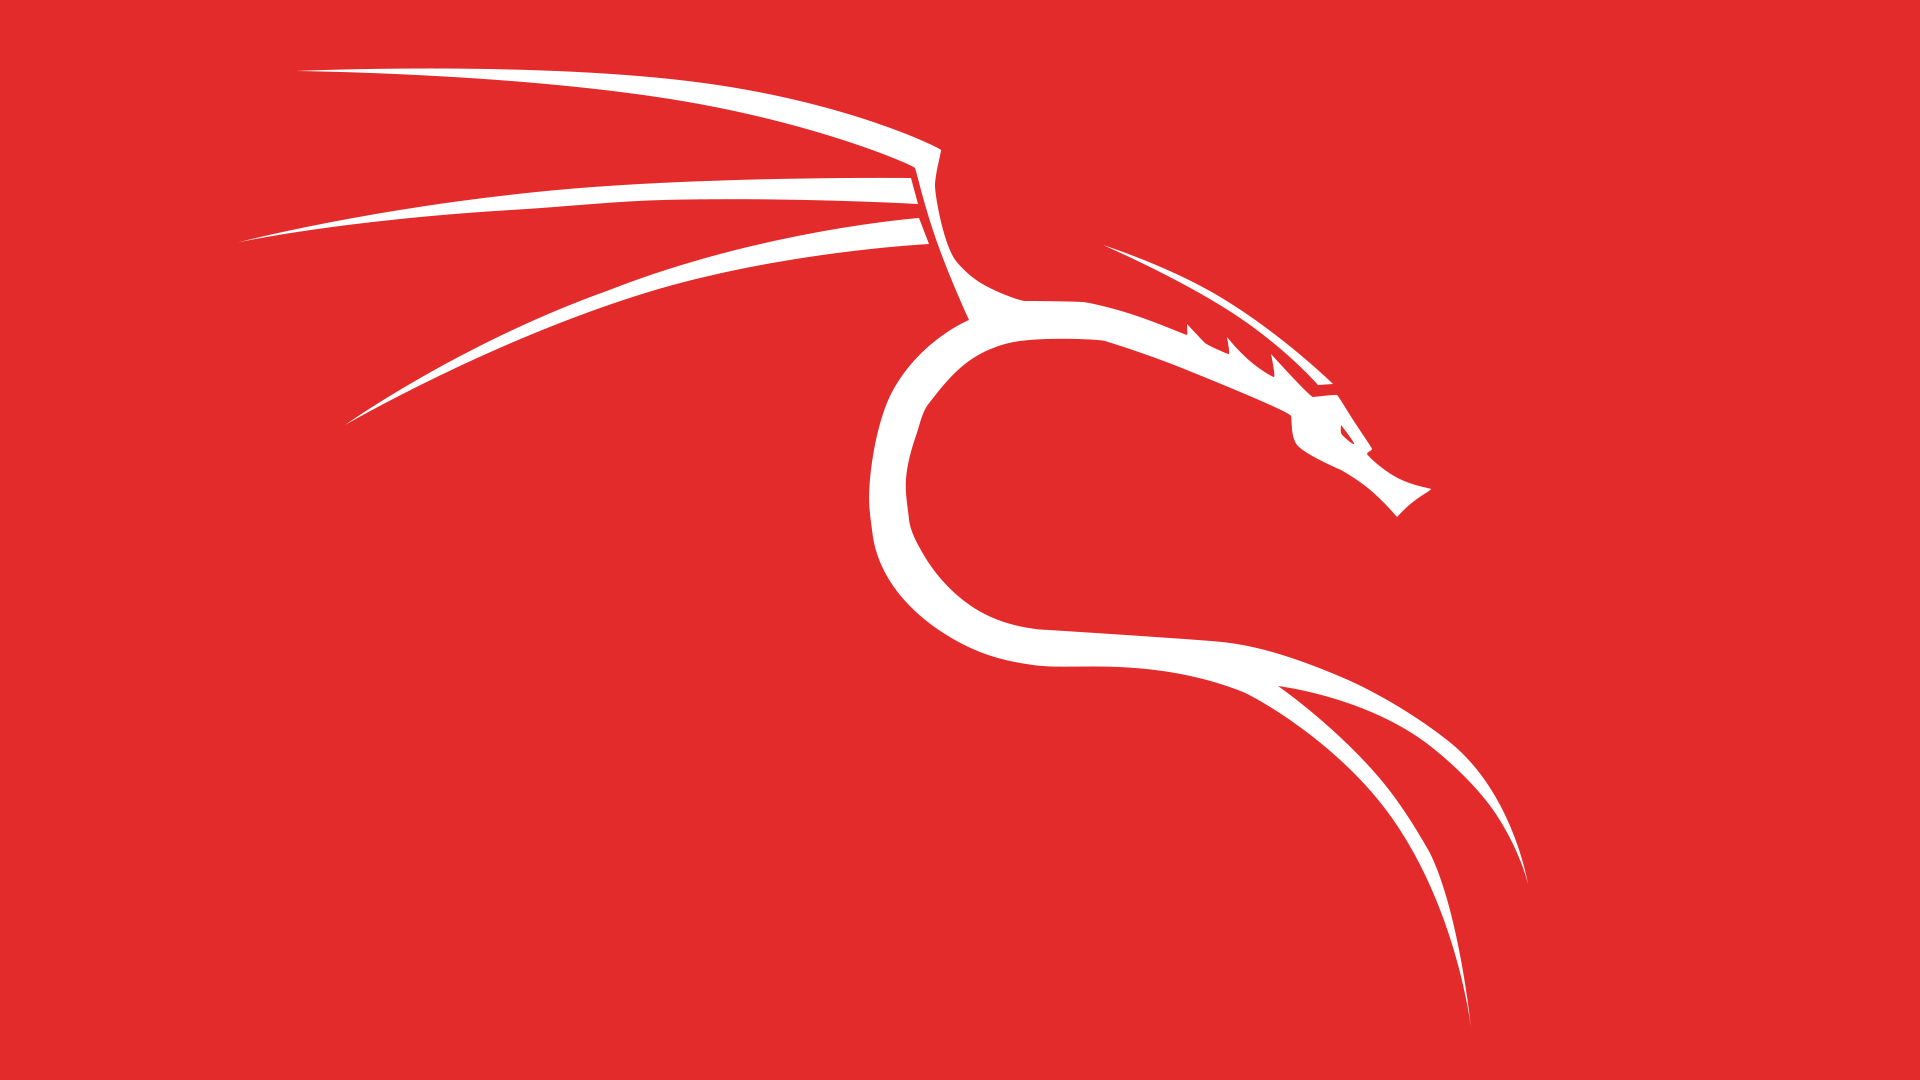 The Red White Dragon Kali Linux Dragon White Dragon Dragon Linux